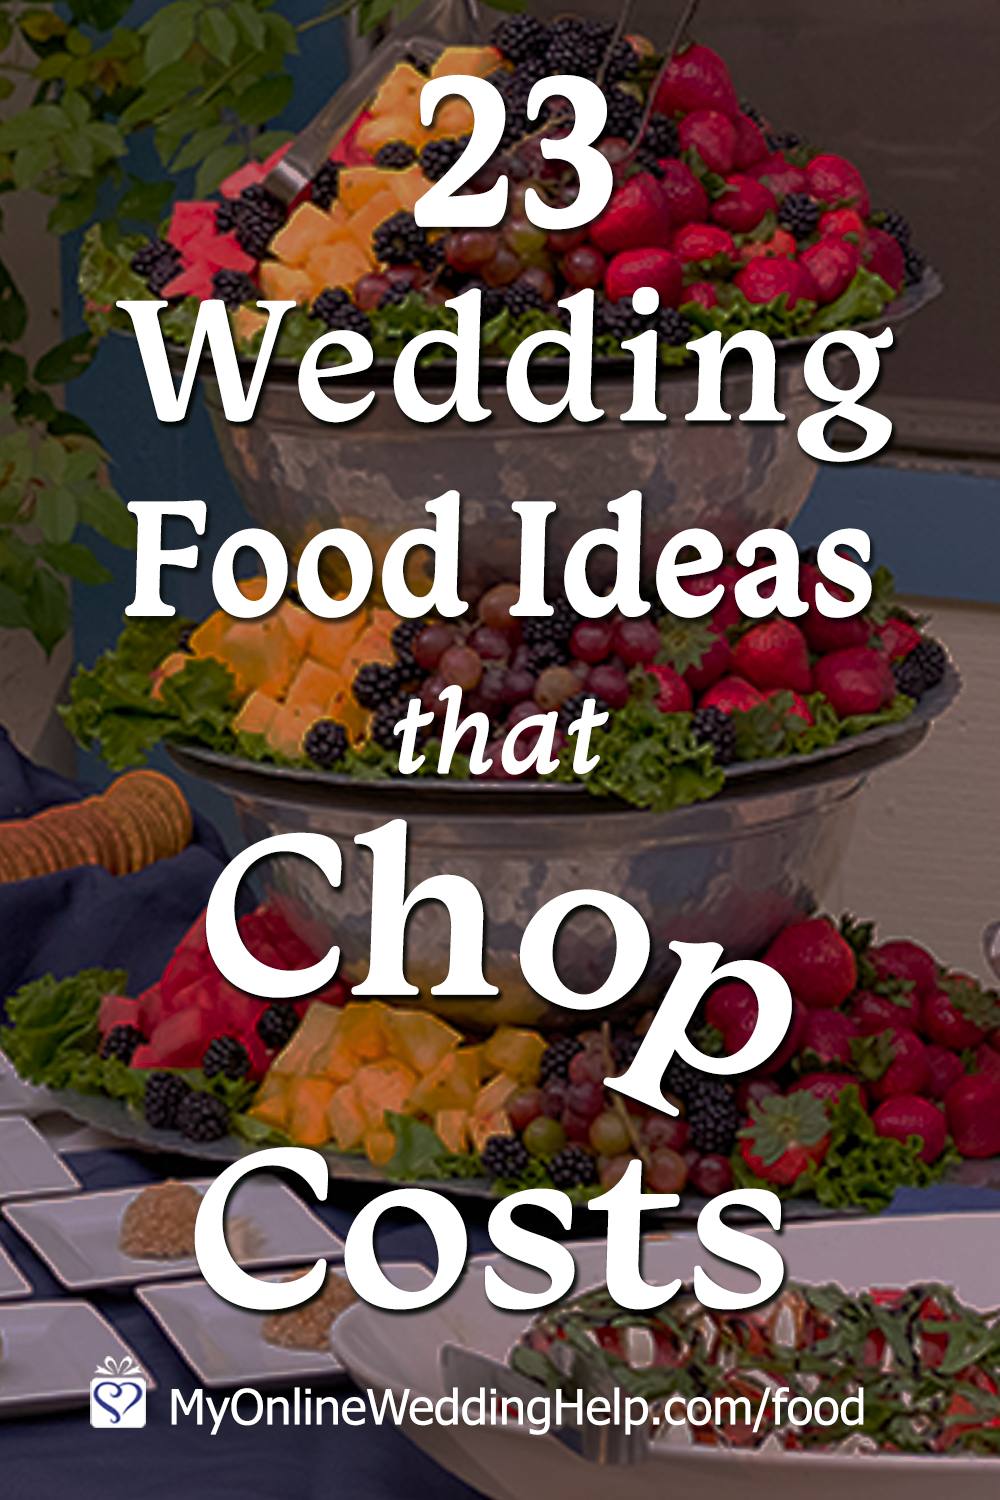 23 Wedding Food Ideas On A Budget Chop Costs Wedding Food Costs Wedding Buffet Food Budget Wedding Meals